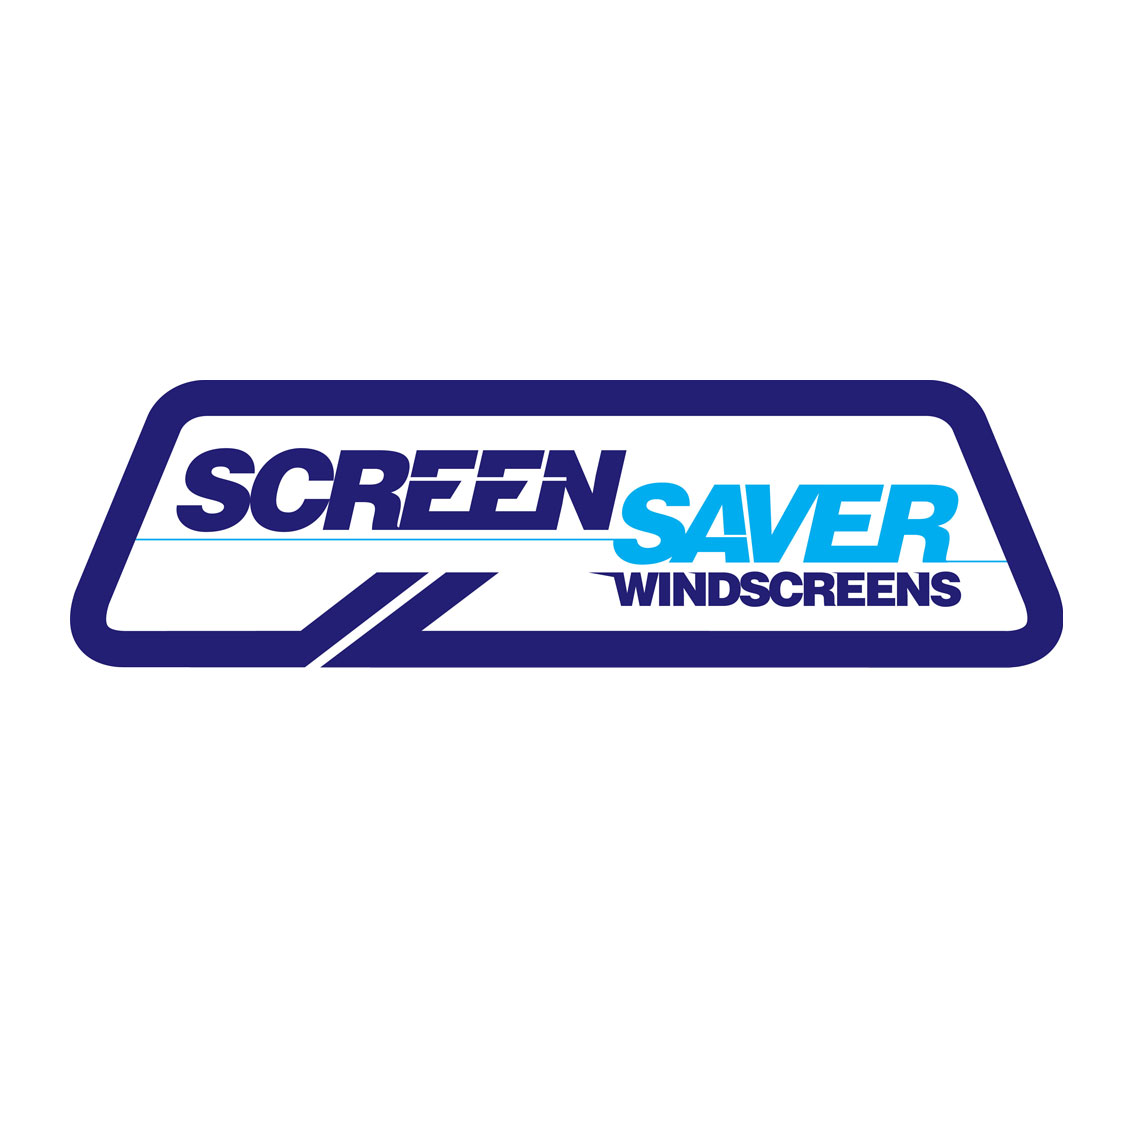 Windscreen specialists logo design